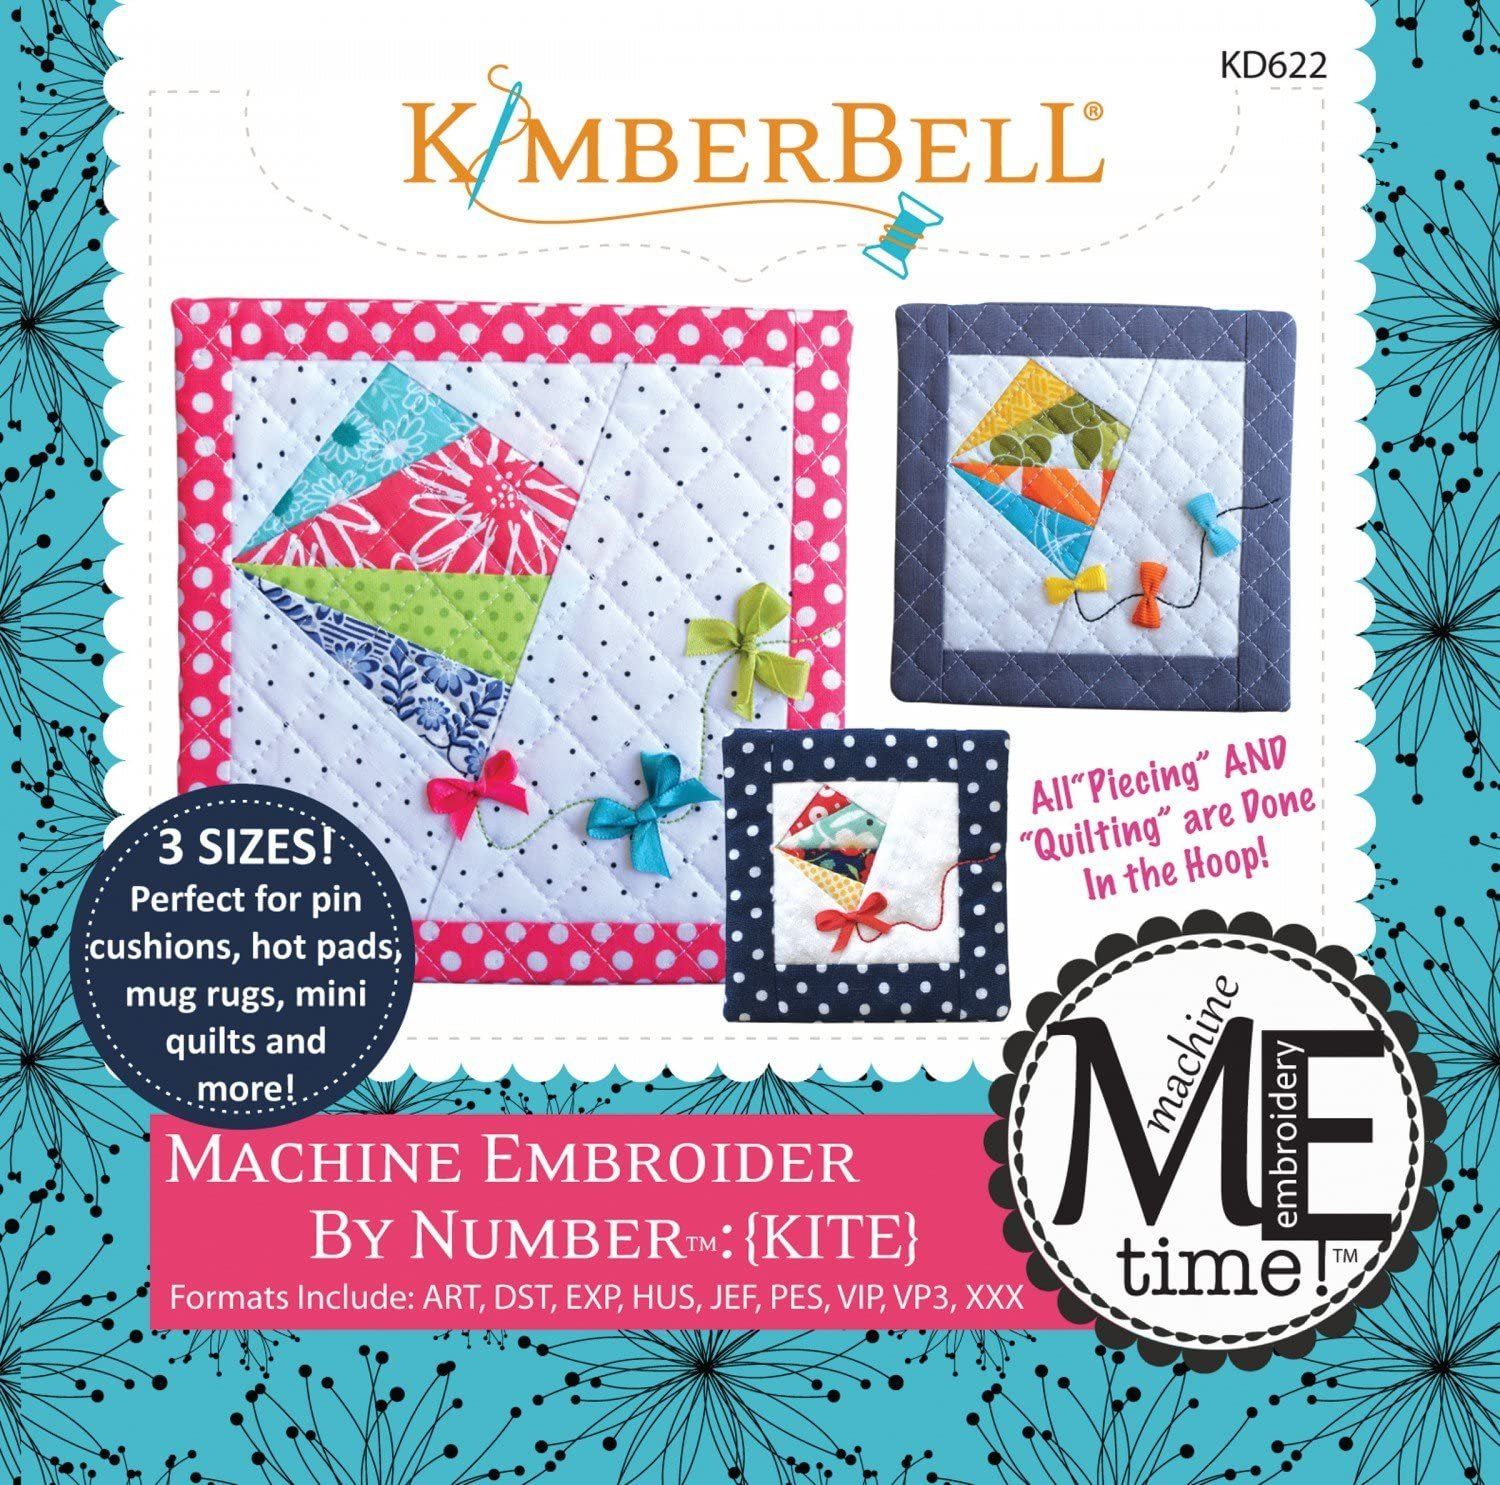 Kimberbell Mach Embroider By Number/Kite